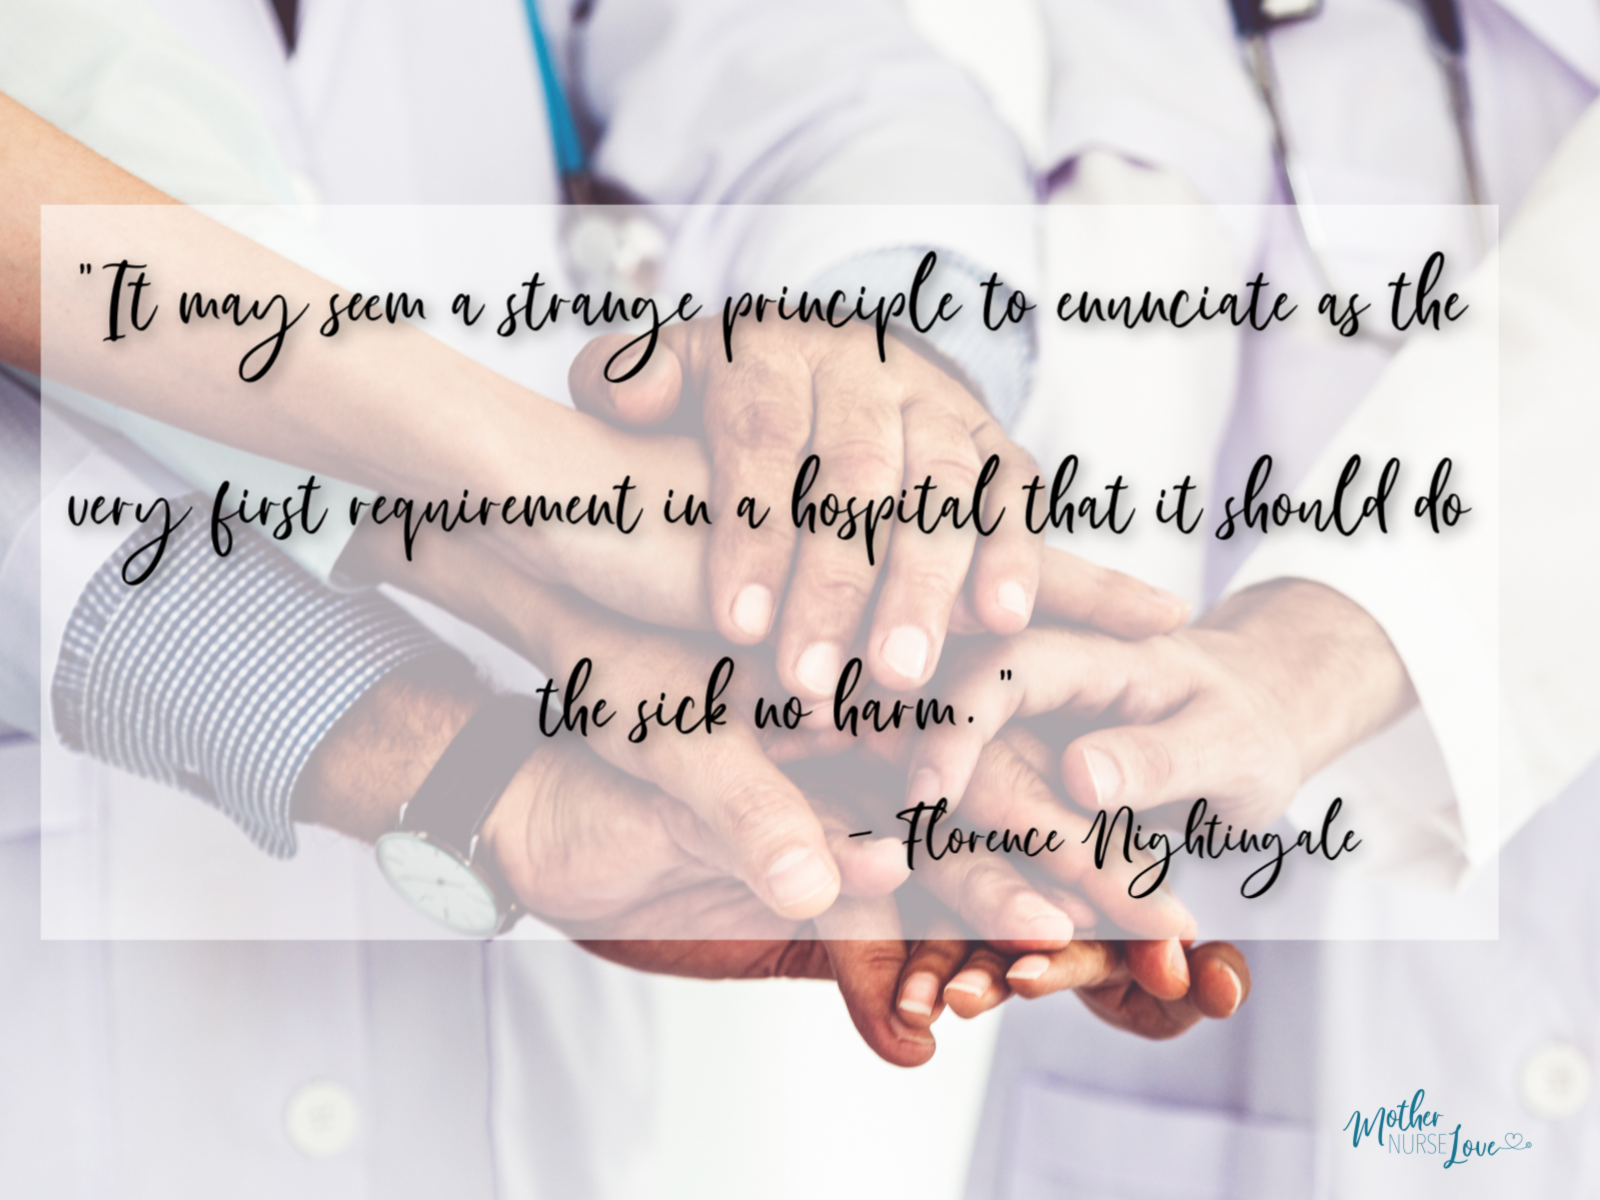 Famous nurse quotes - Florence Nightingale